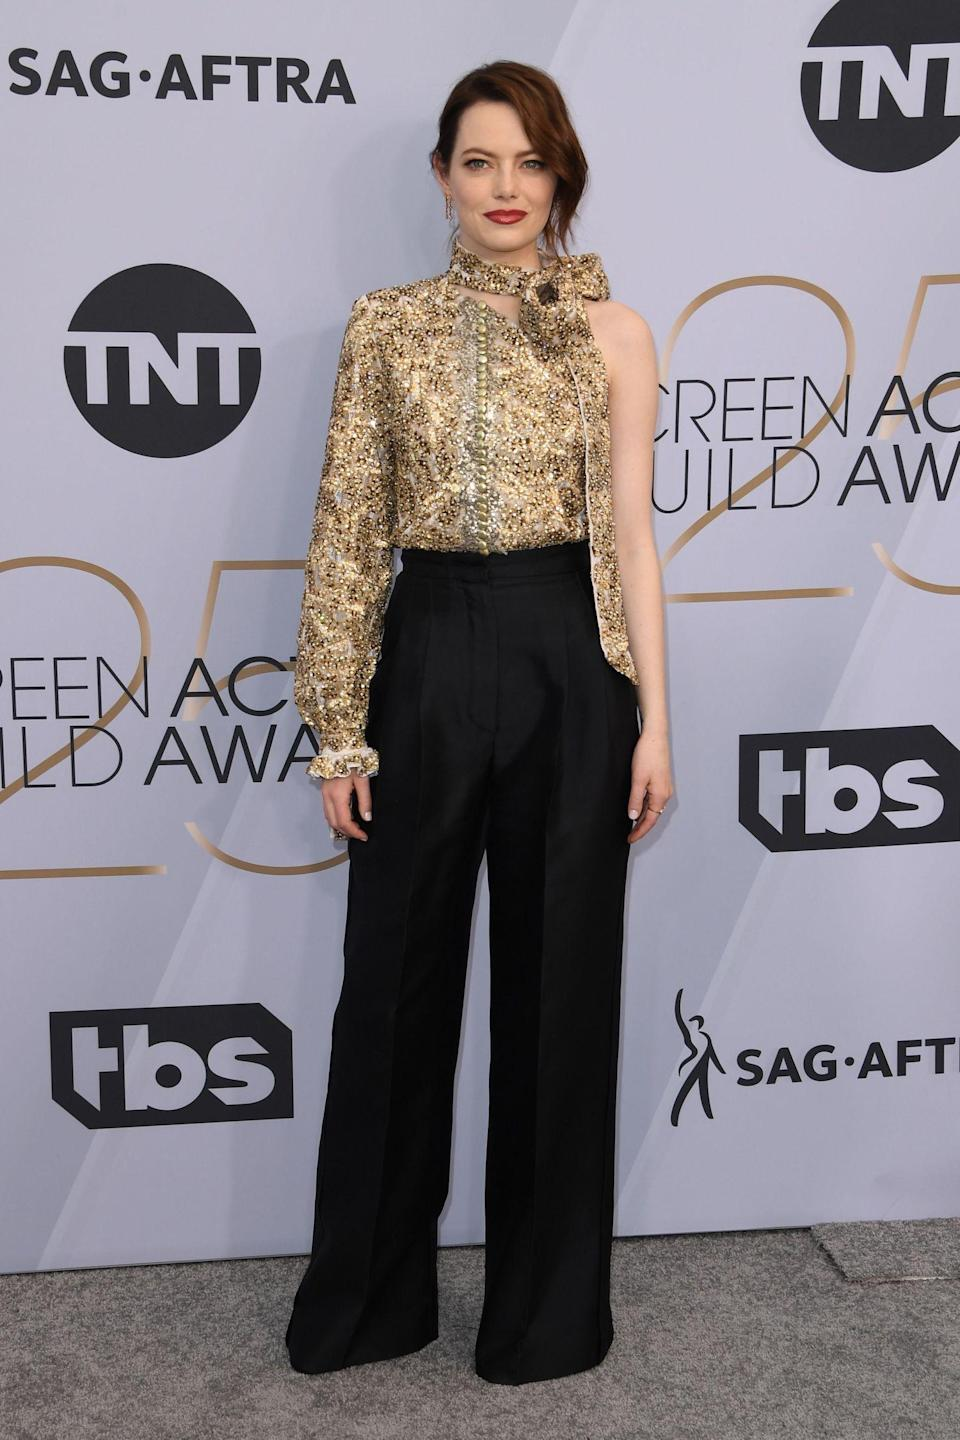 """<p>Emma Stone wore head to toe Louis Vuitton to the SAG ceremony. <em>The Favourite</em> actress was hilariously <a rel=""""nofollow noopener"""" href=""""https://people.com/tv/sag-awards-2019-megan-mullally-opening-monologue-emma-stone/"""" target=""""_blank"""" data-ylk=""""slk:targeted"""" class=""""link rapid-noclick-resp"""">targeted</a> by Megan Mullalay at the top of the show. """"To SAG nominee, the beautiful Emma Stone, who just turned 30. Our condolences. You had a great run, like a really great run,"""" Mullally joked. """"Extra good. But we're looking forward to your reverse mortgage loan commercials. They're going to be great."""" (Photo: Getty Images) </p>"""